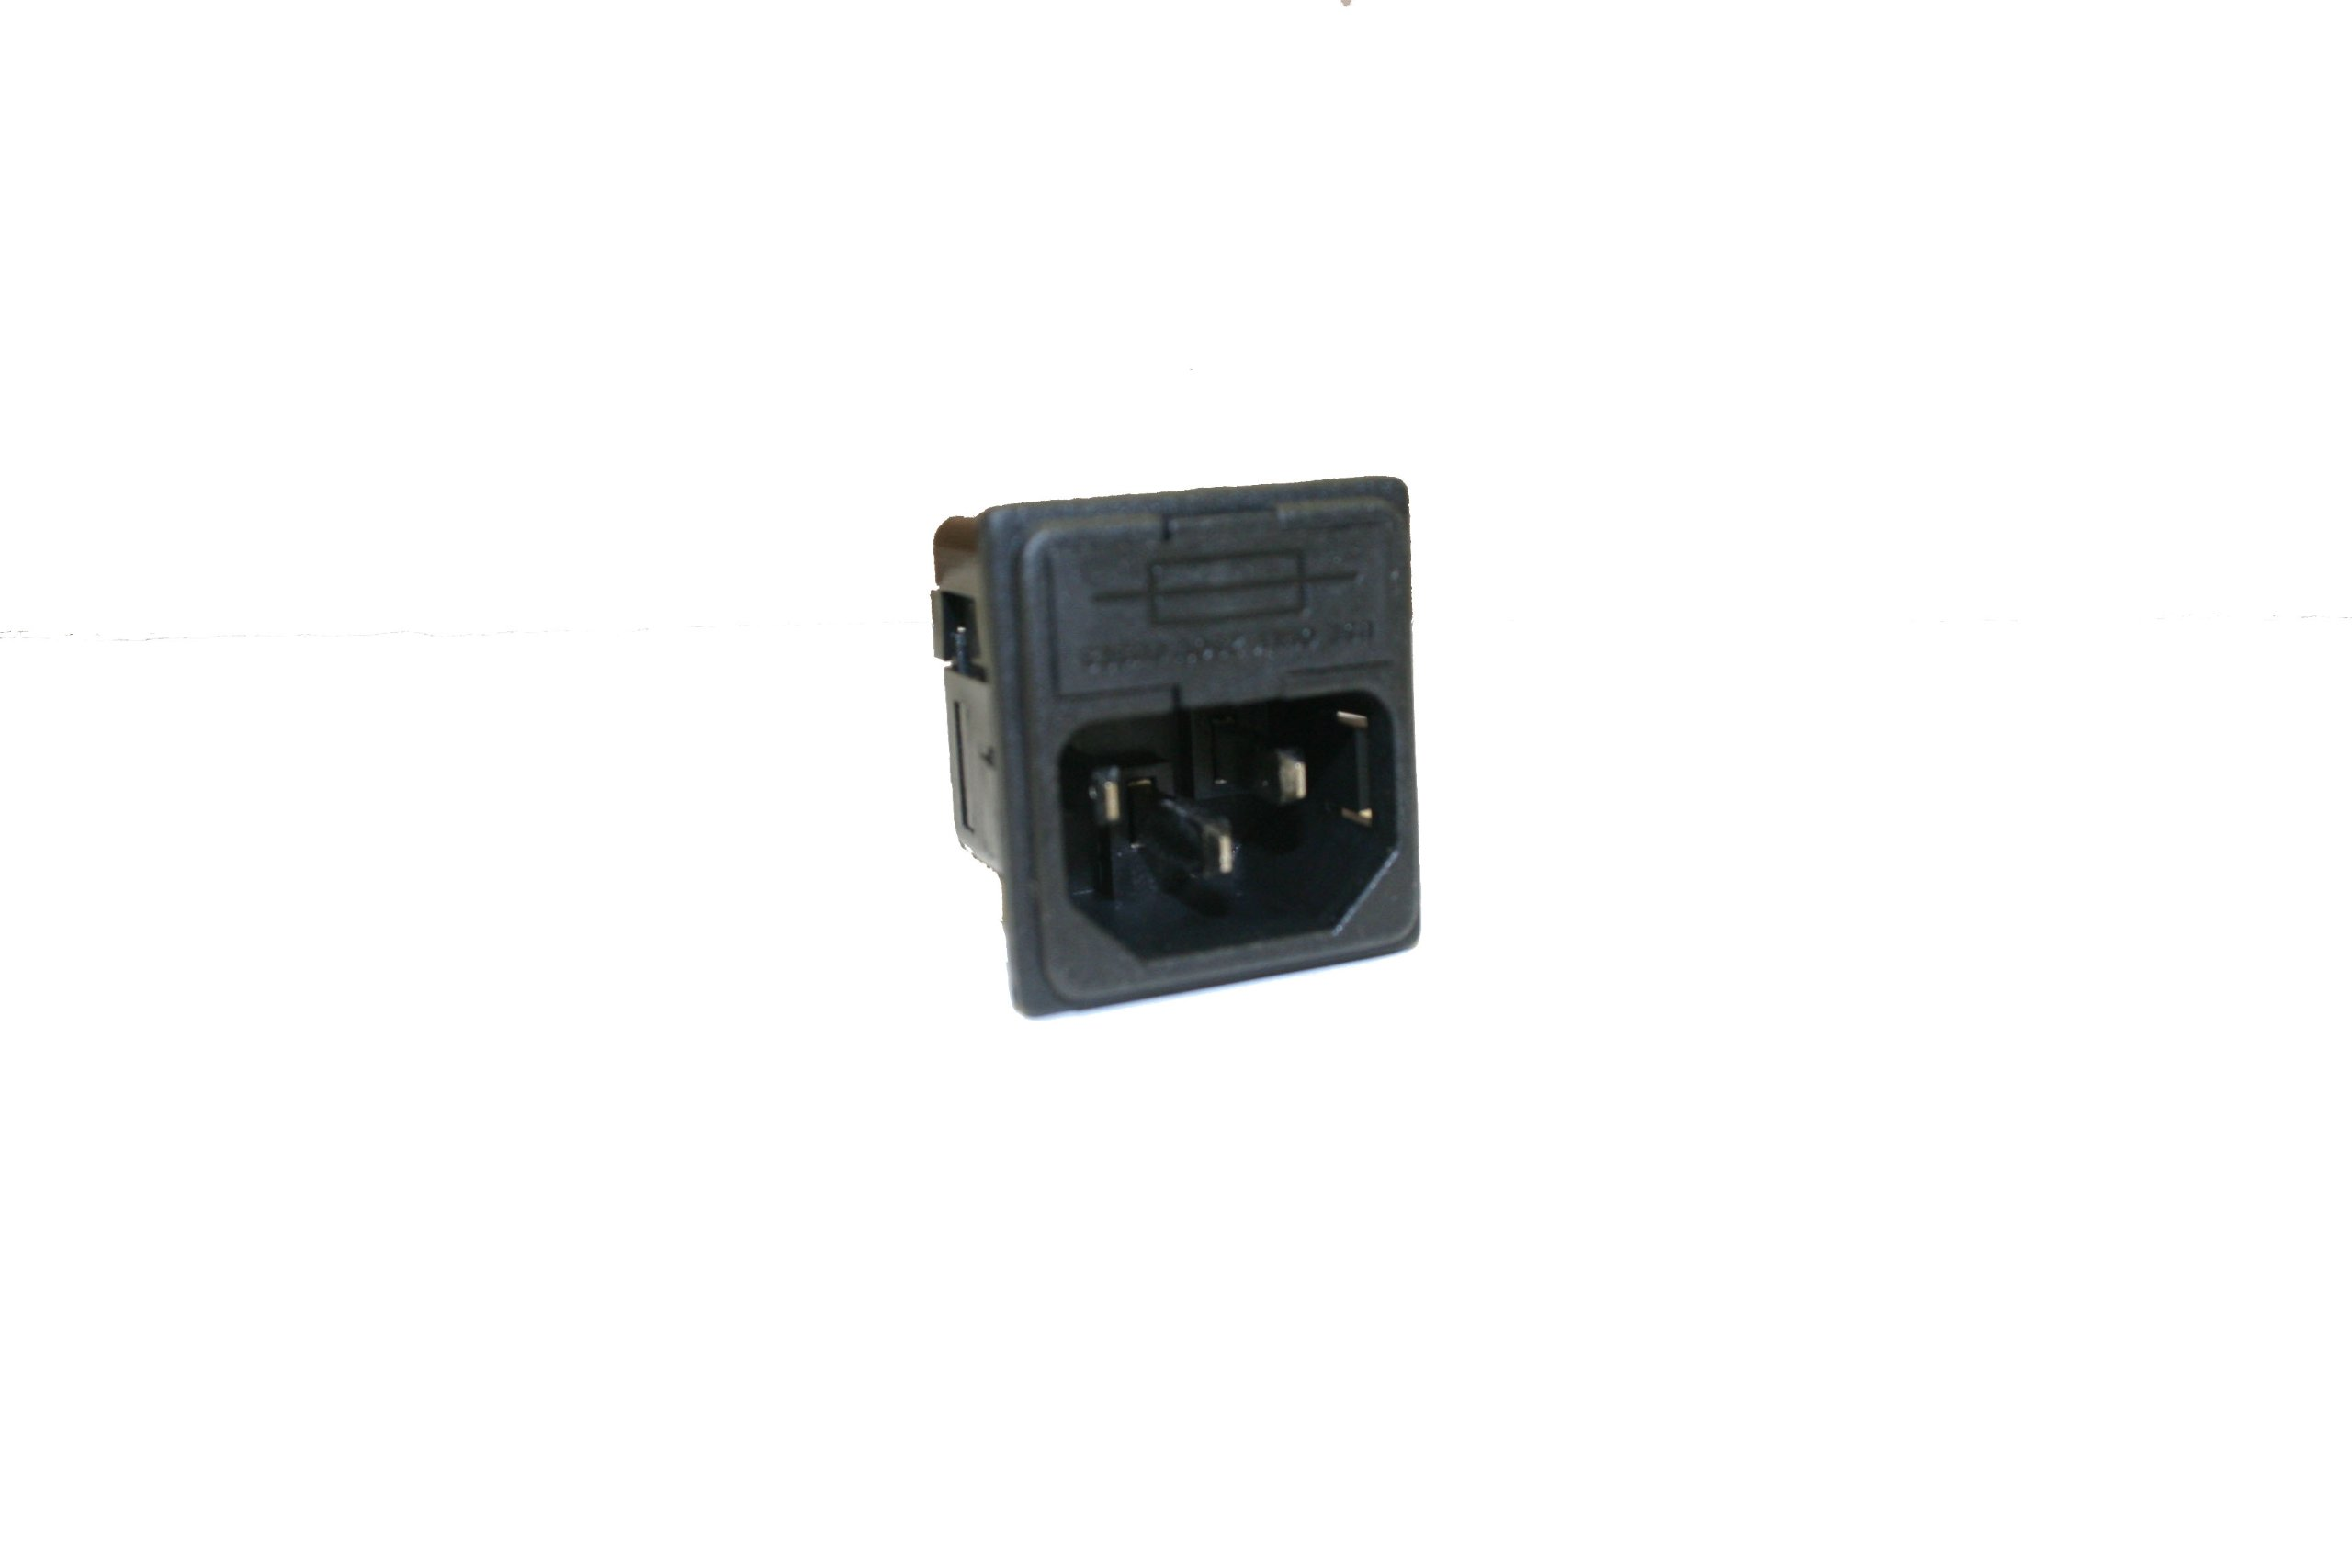 Interpower 83110141 Two Function Single Fused Power Entry Module, C14 Inlet, Single Fused, 10A Current Rating, 250VAC Voltage Rating by Interpower